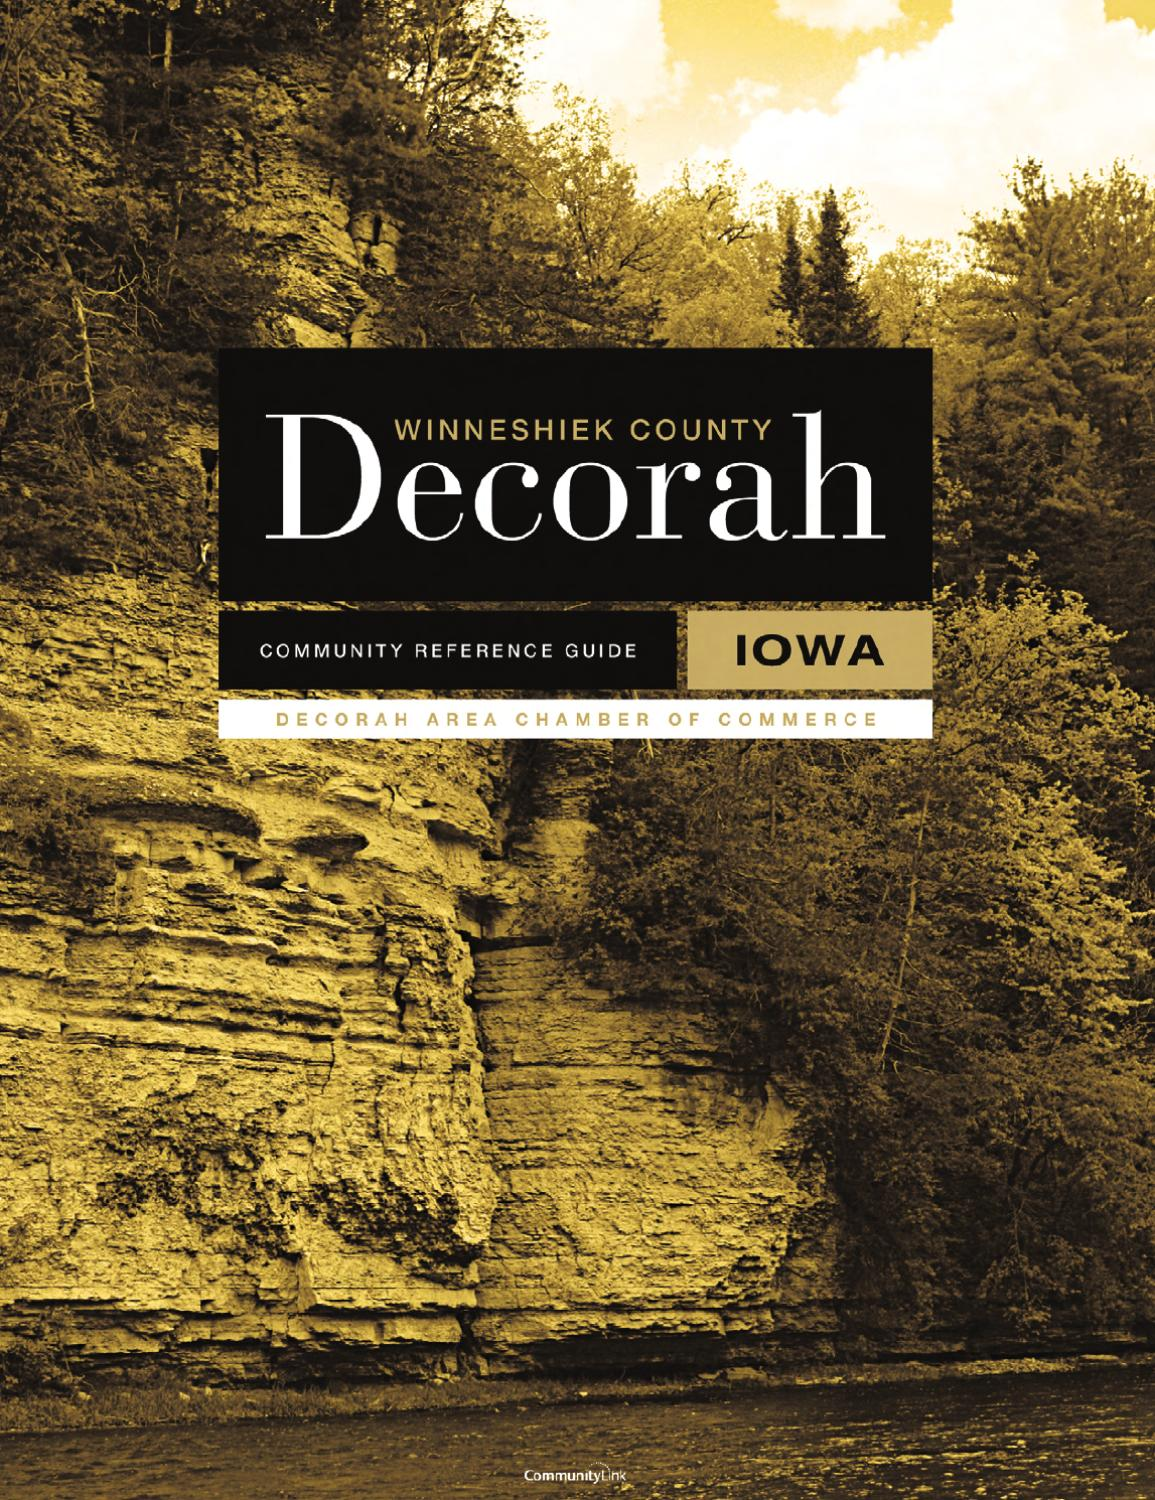 Decorah, IA 2010 Community Reference Guide by Tivoli Design + Media ...